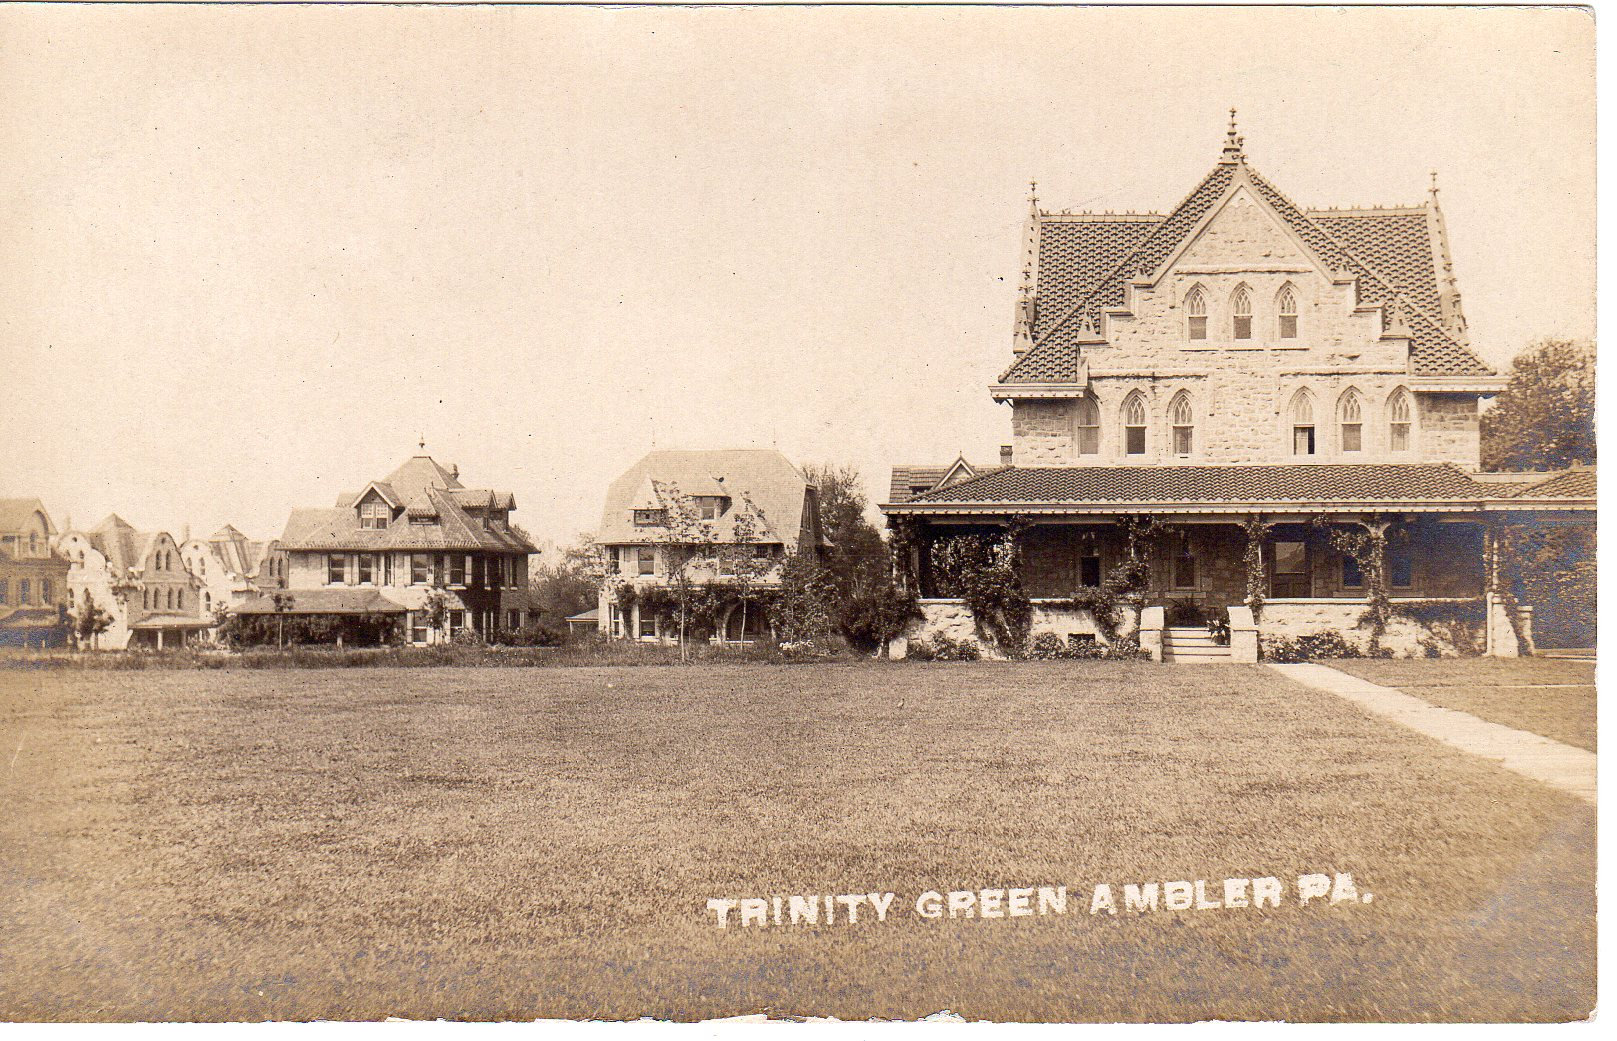 Post Card Collection (E Simon)_2682_32_Trinity Green, Ambler, Pa